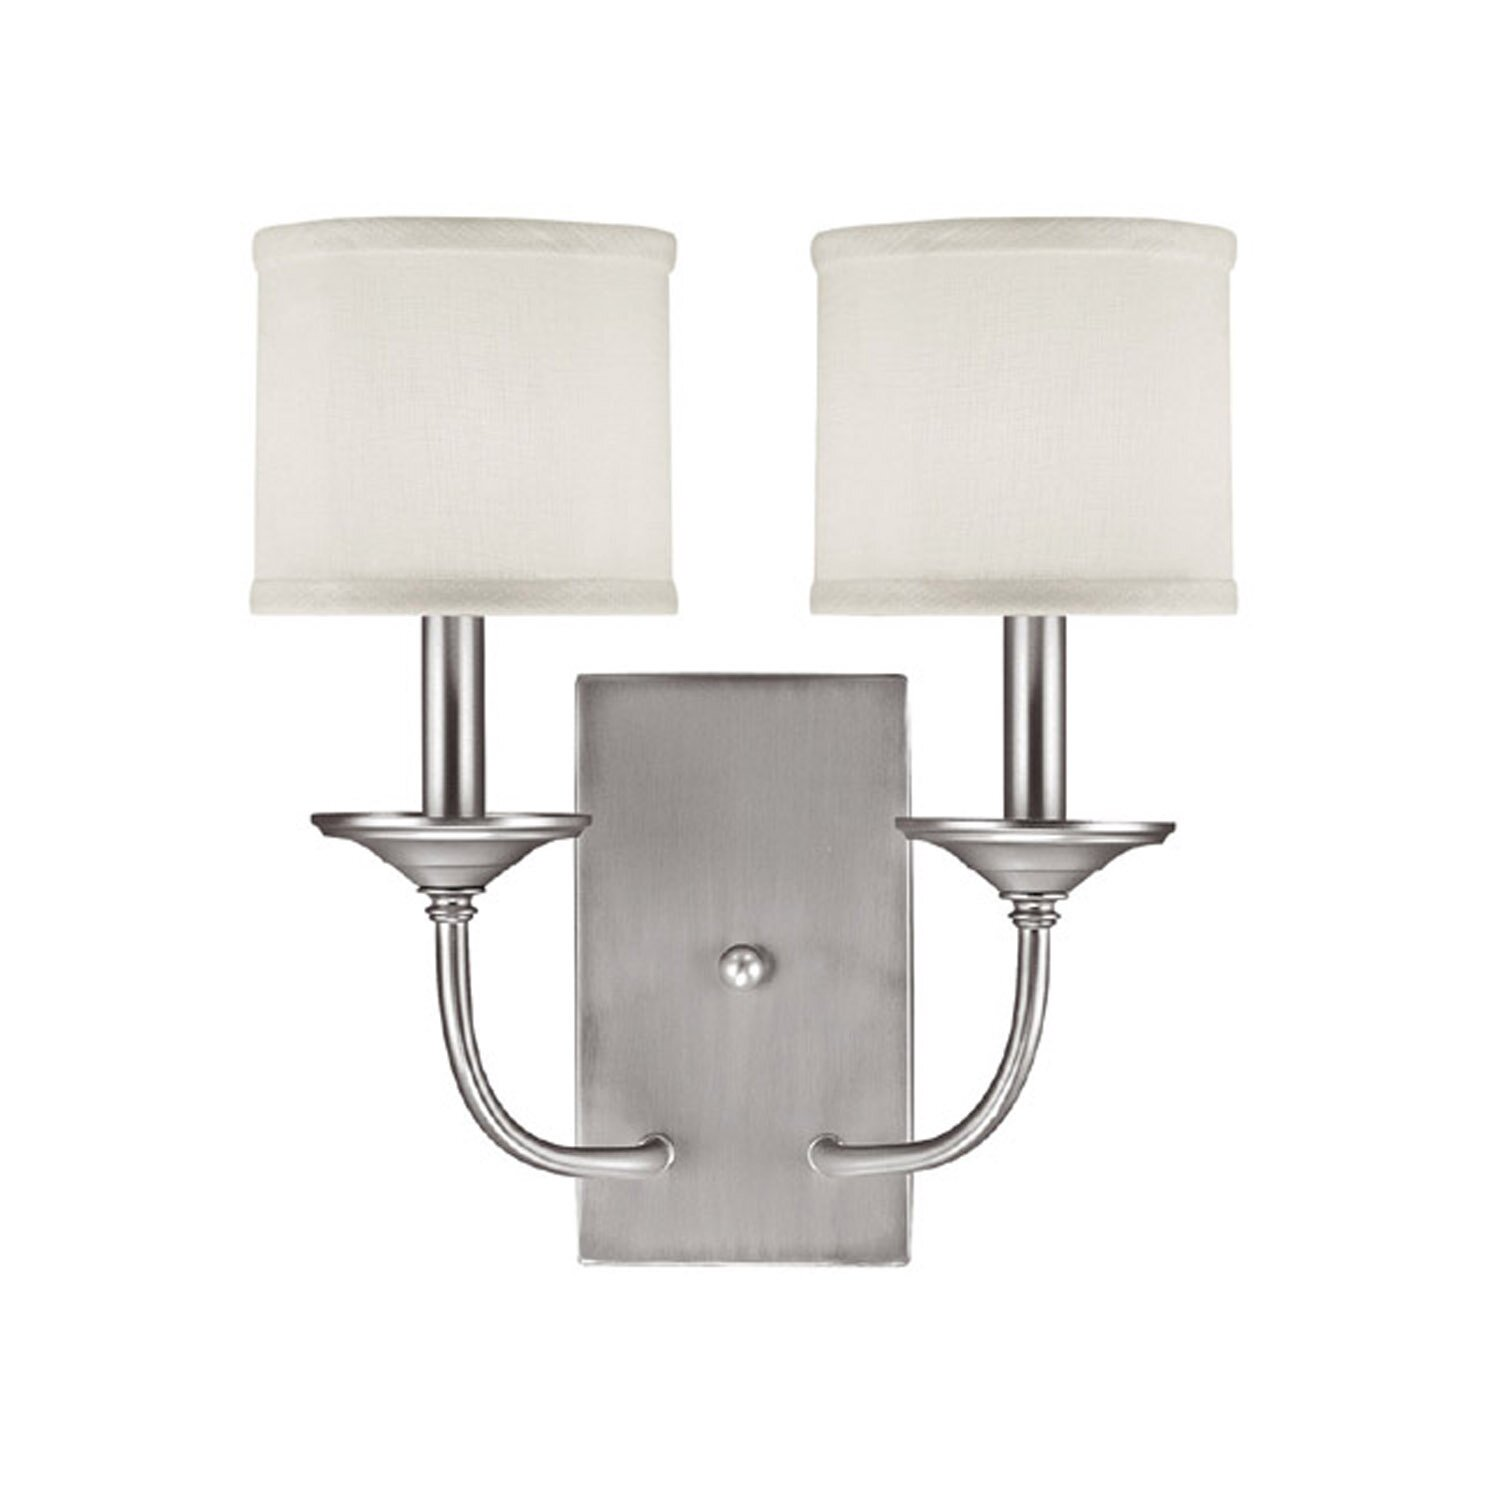 Maura 1-Light Wall Sconce Joss & Main